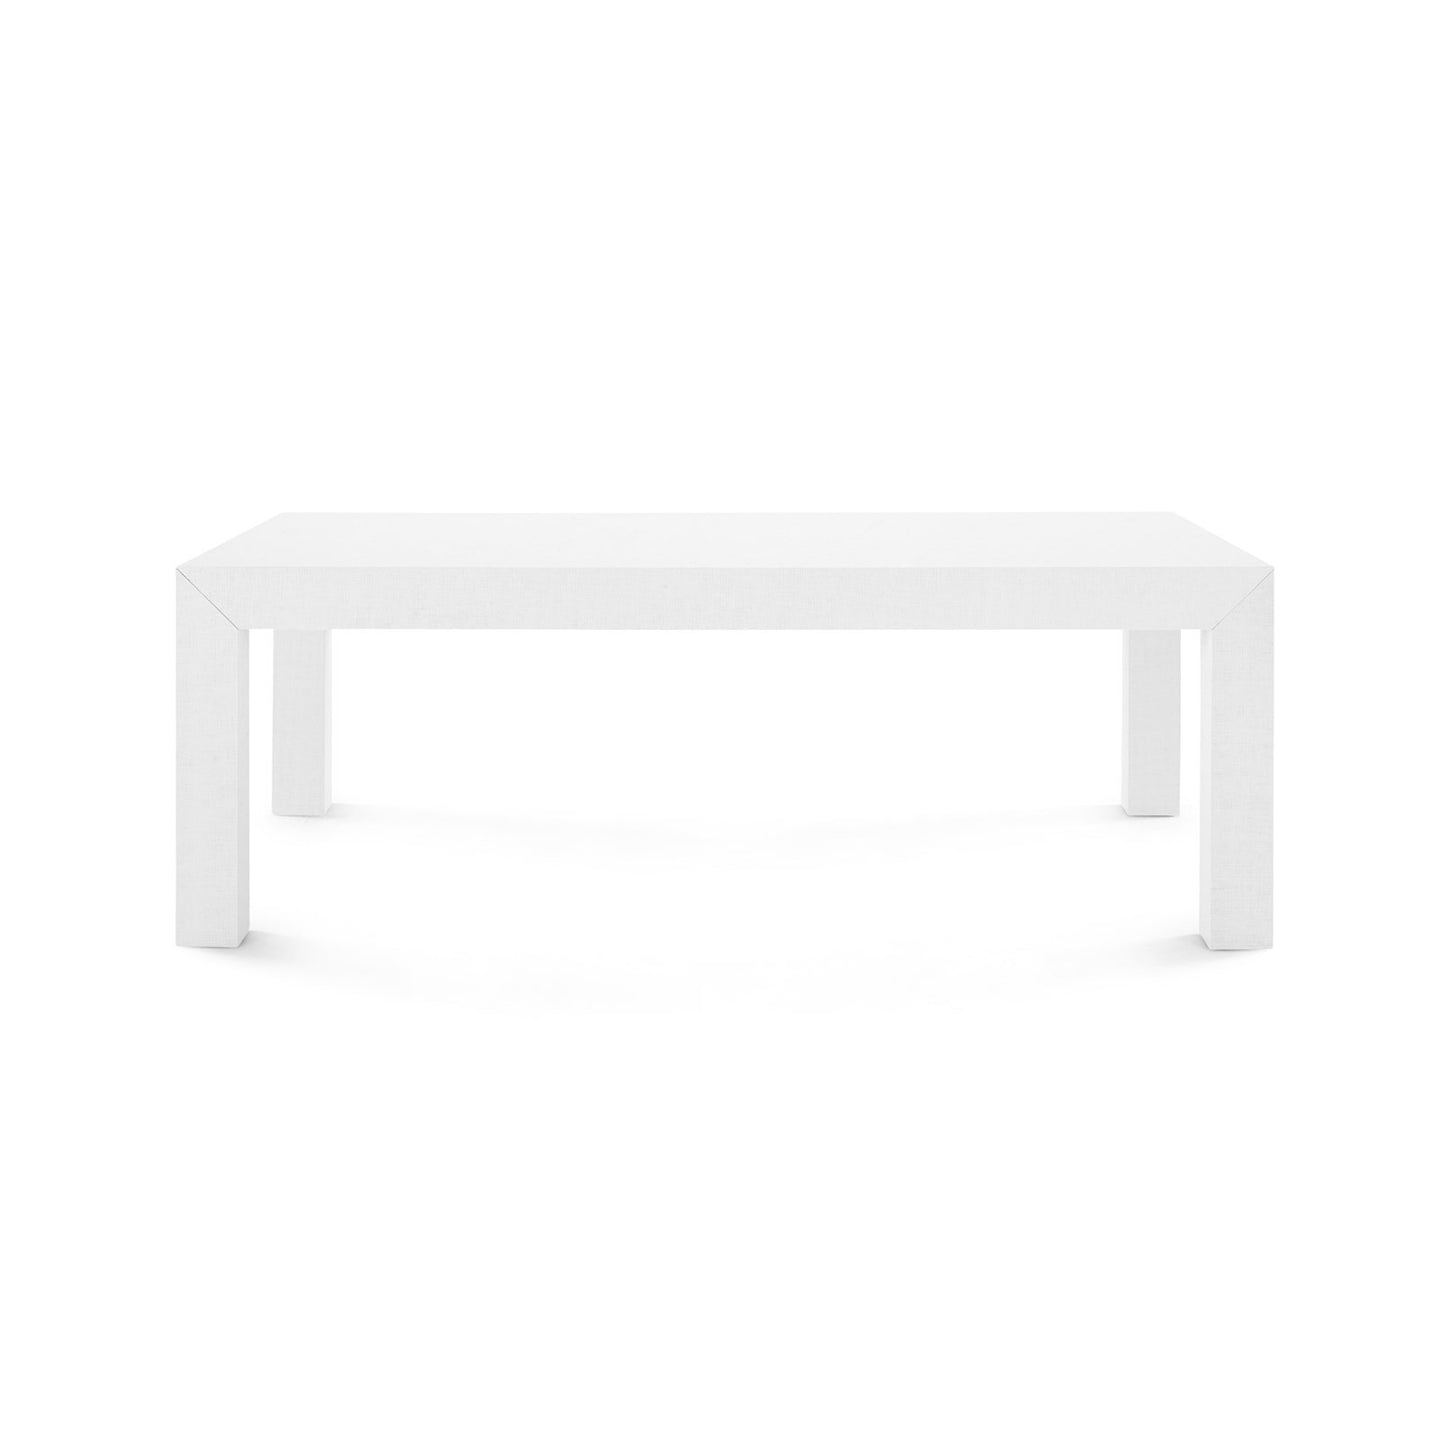 Bungalow 5 Parsons Coffee Table White PSN 300 59